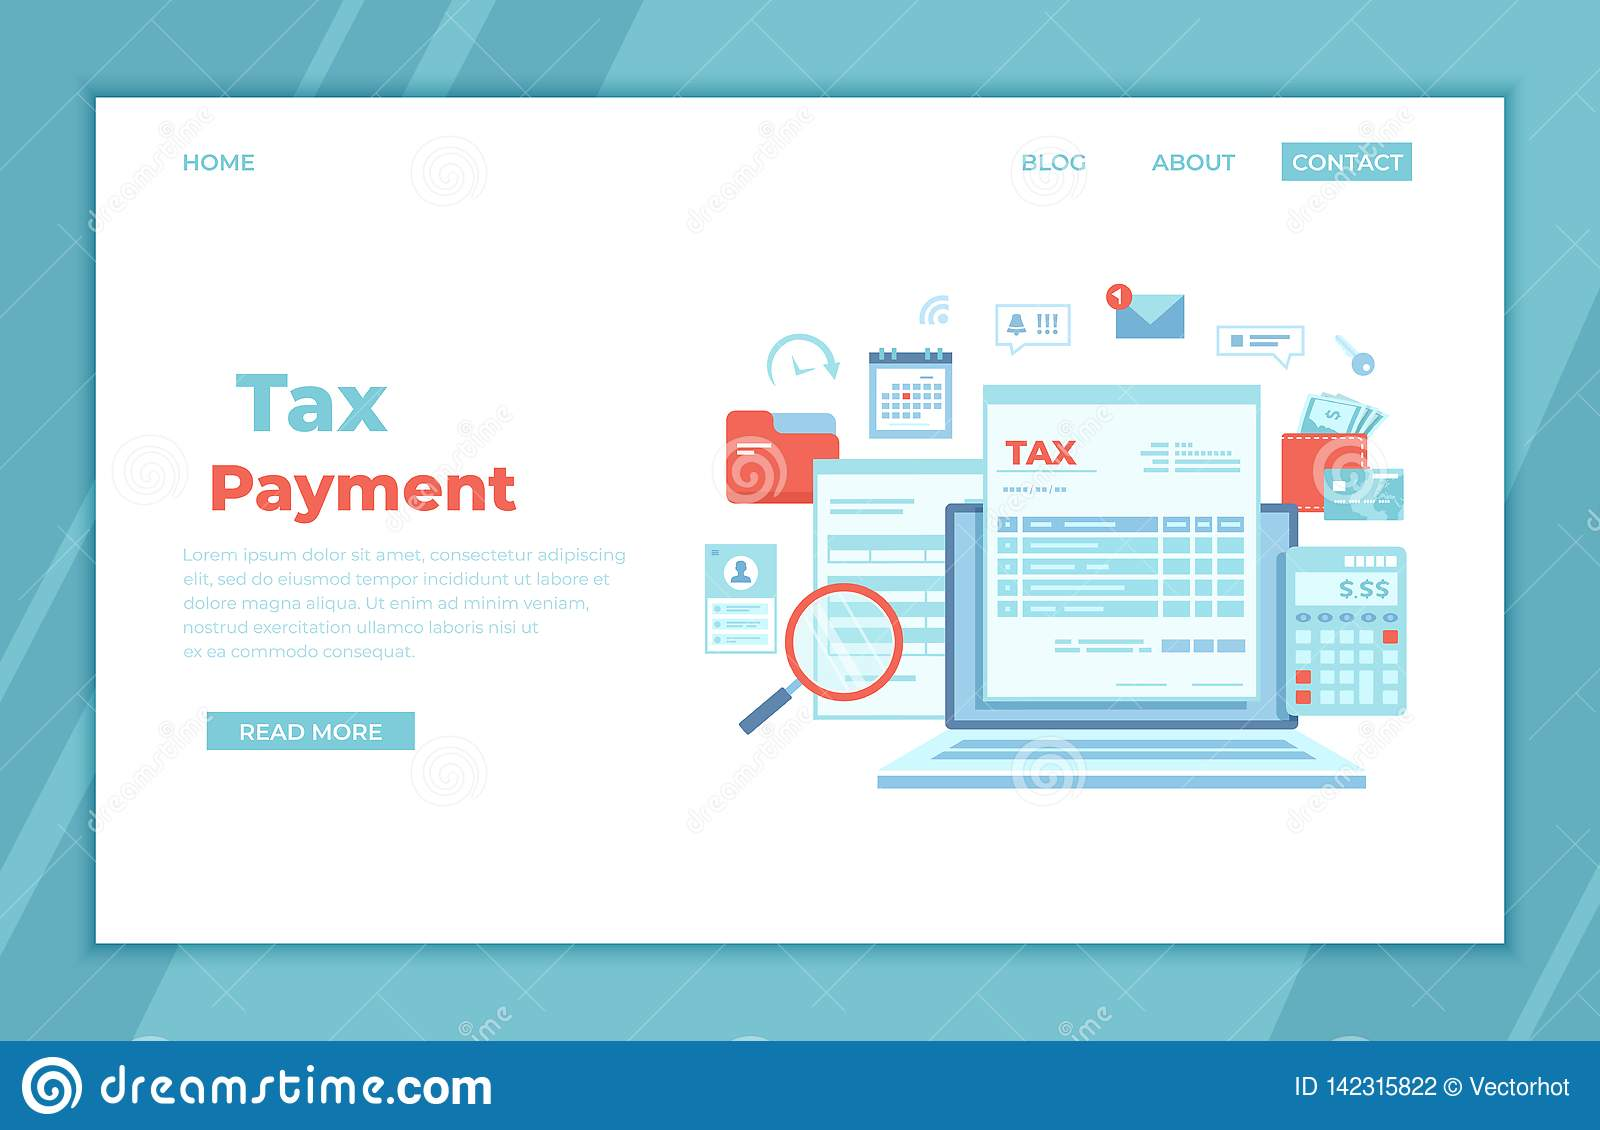 State income tax is different from the federal income tax. Tax Payment State Government Taxation Calculation Of Tax Return Tax Form Financial Calendar Magnifying Glass Money Credit C Stock Vector Illustration Of Icon Financial 142315822